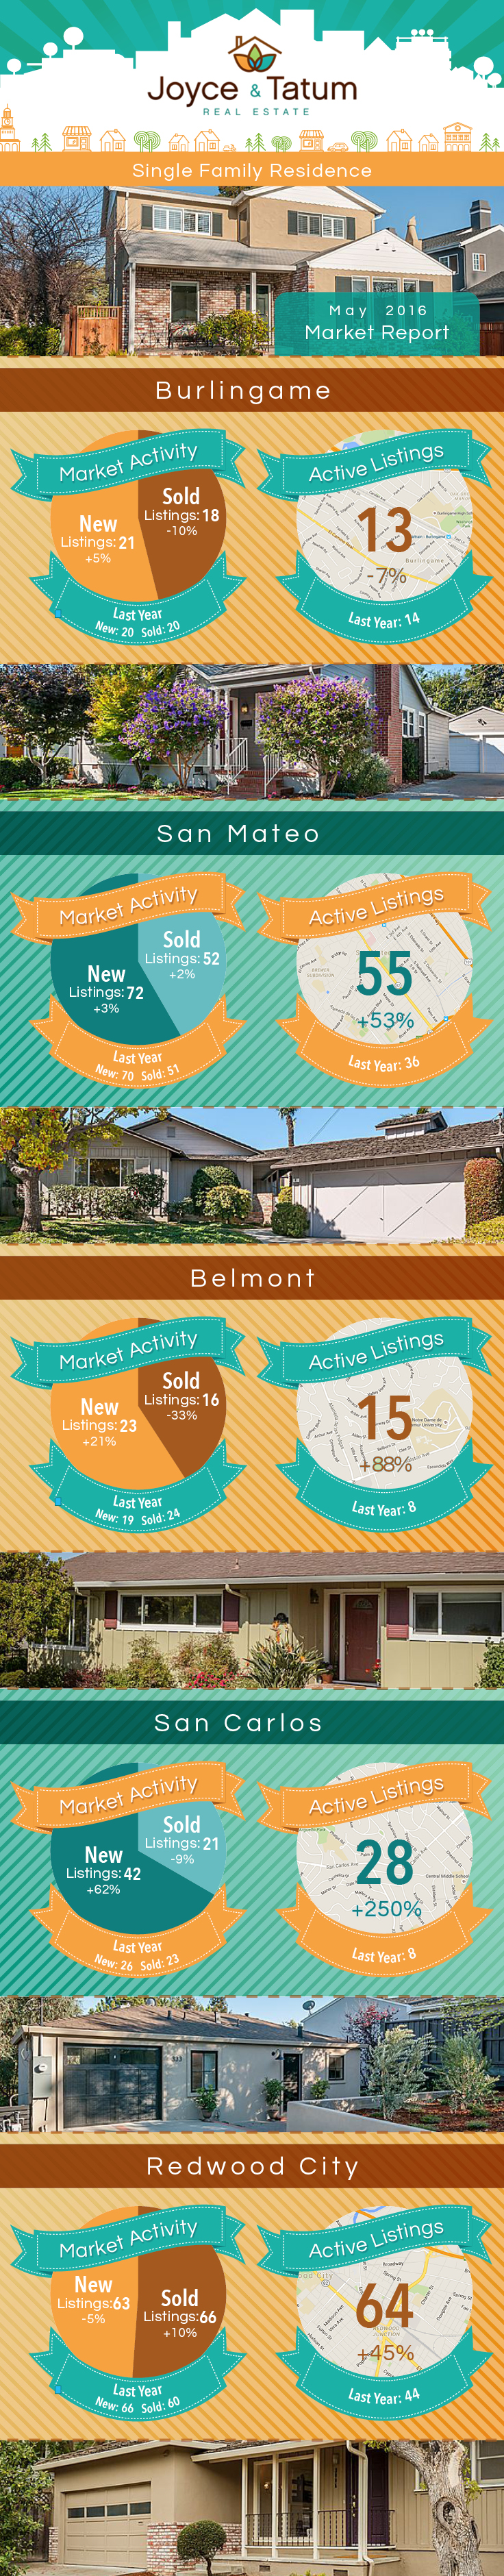 Infographic of the May 2016 Bay Area Real Estate Market Stats